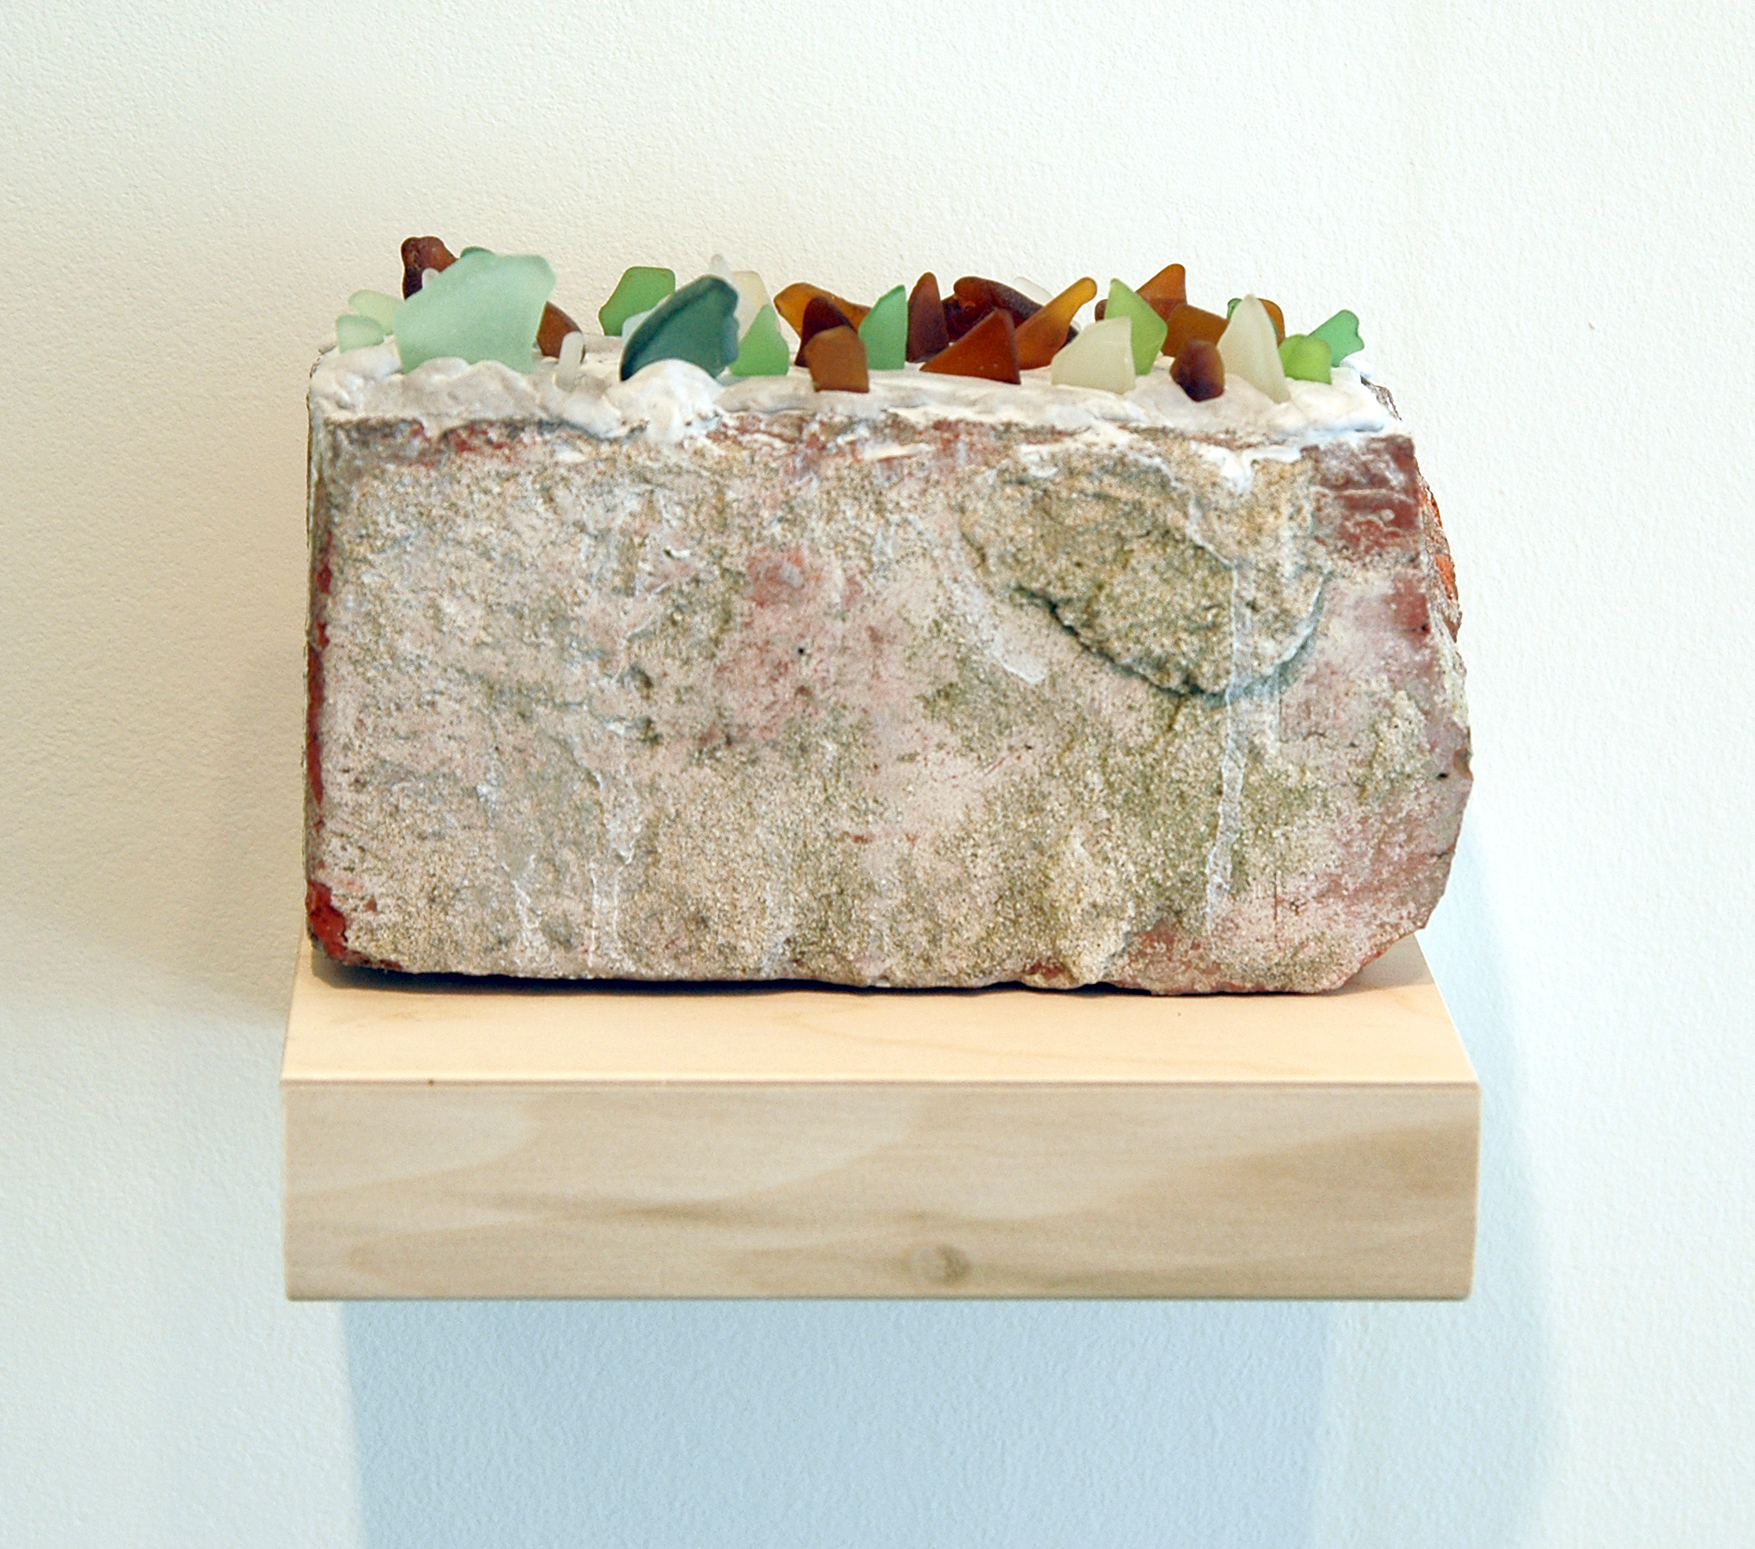 "PABLO GUARDIOLA   Sea Glass Wall , brick, concrete and sea glass, 8"" x 4"" x 2"", 2011"